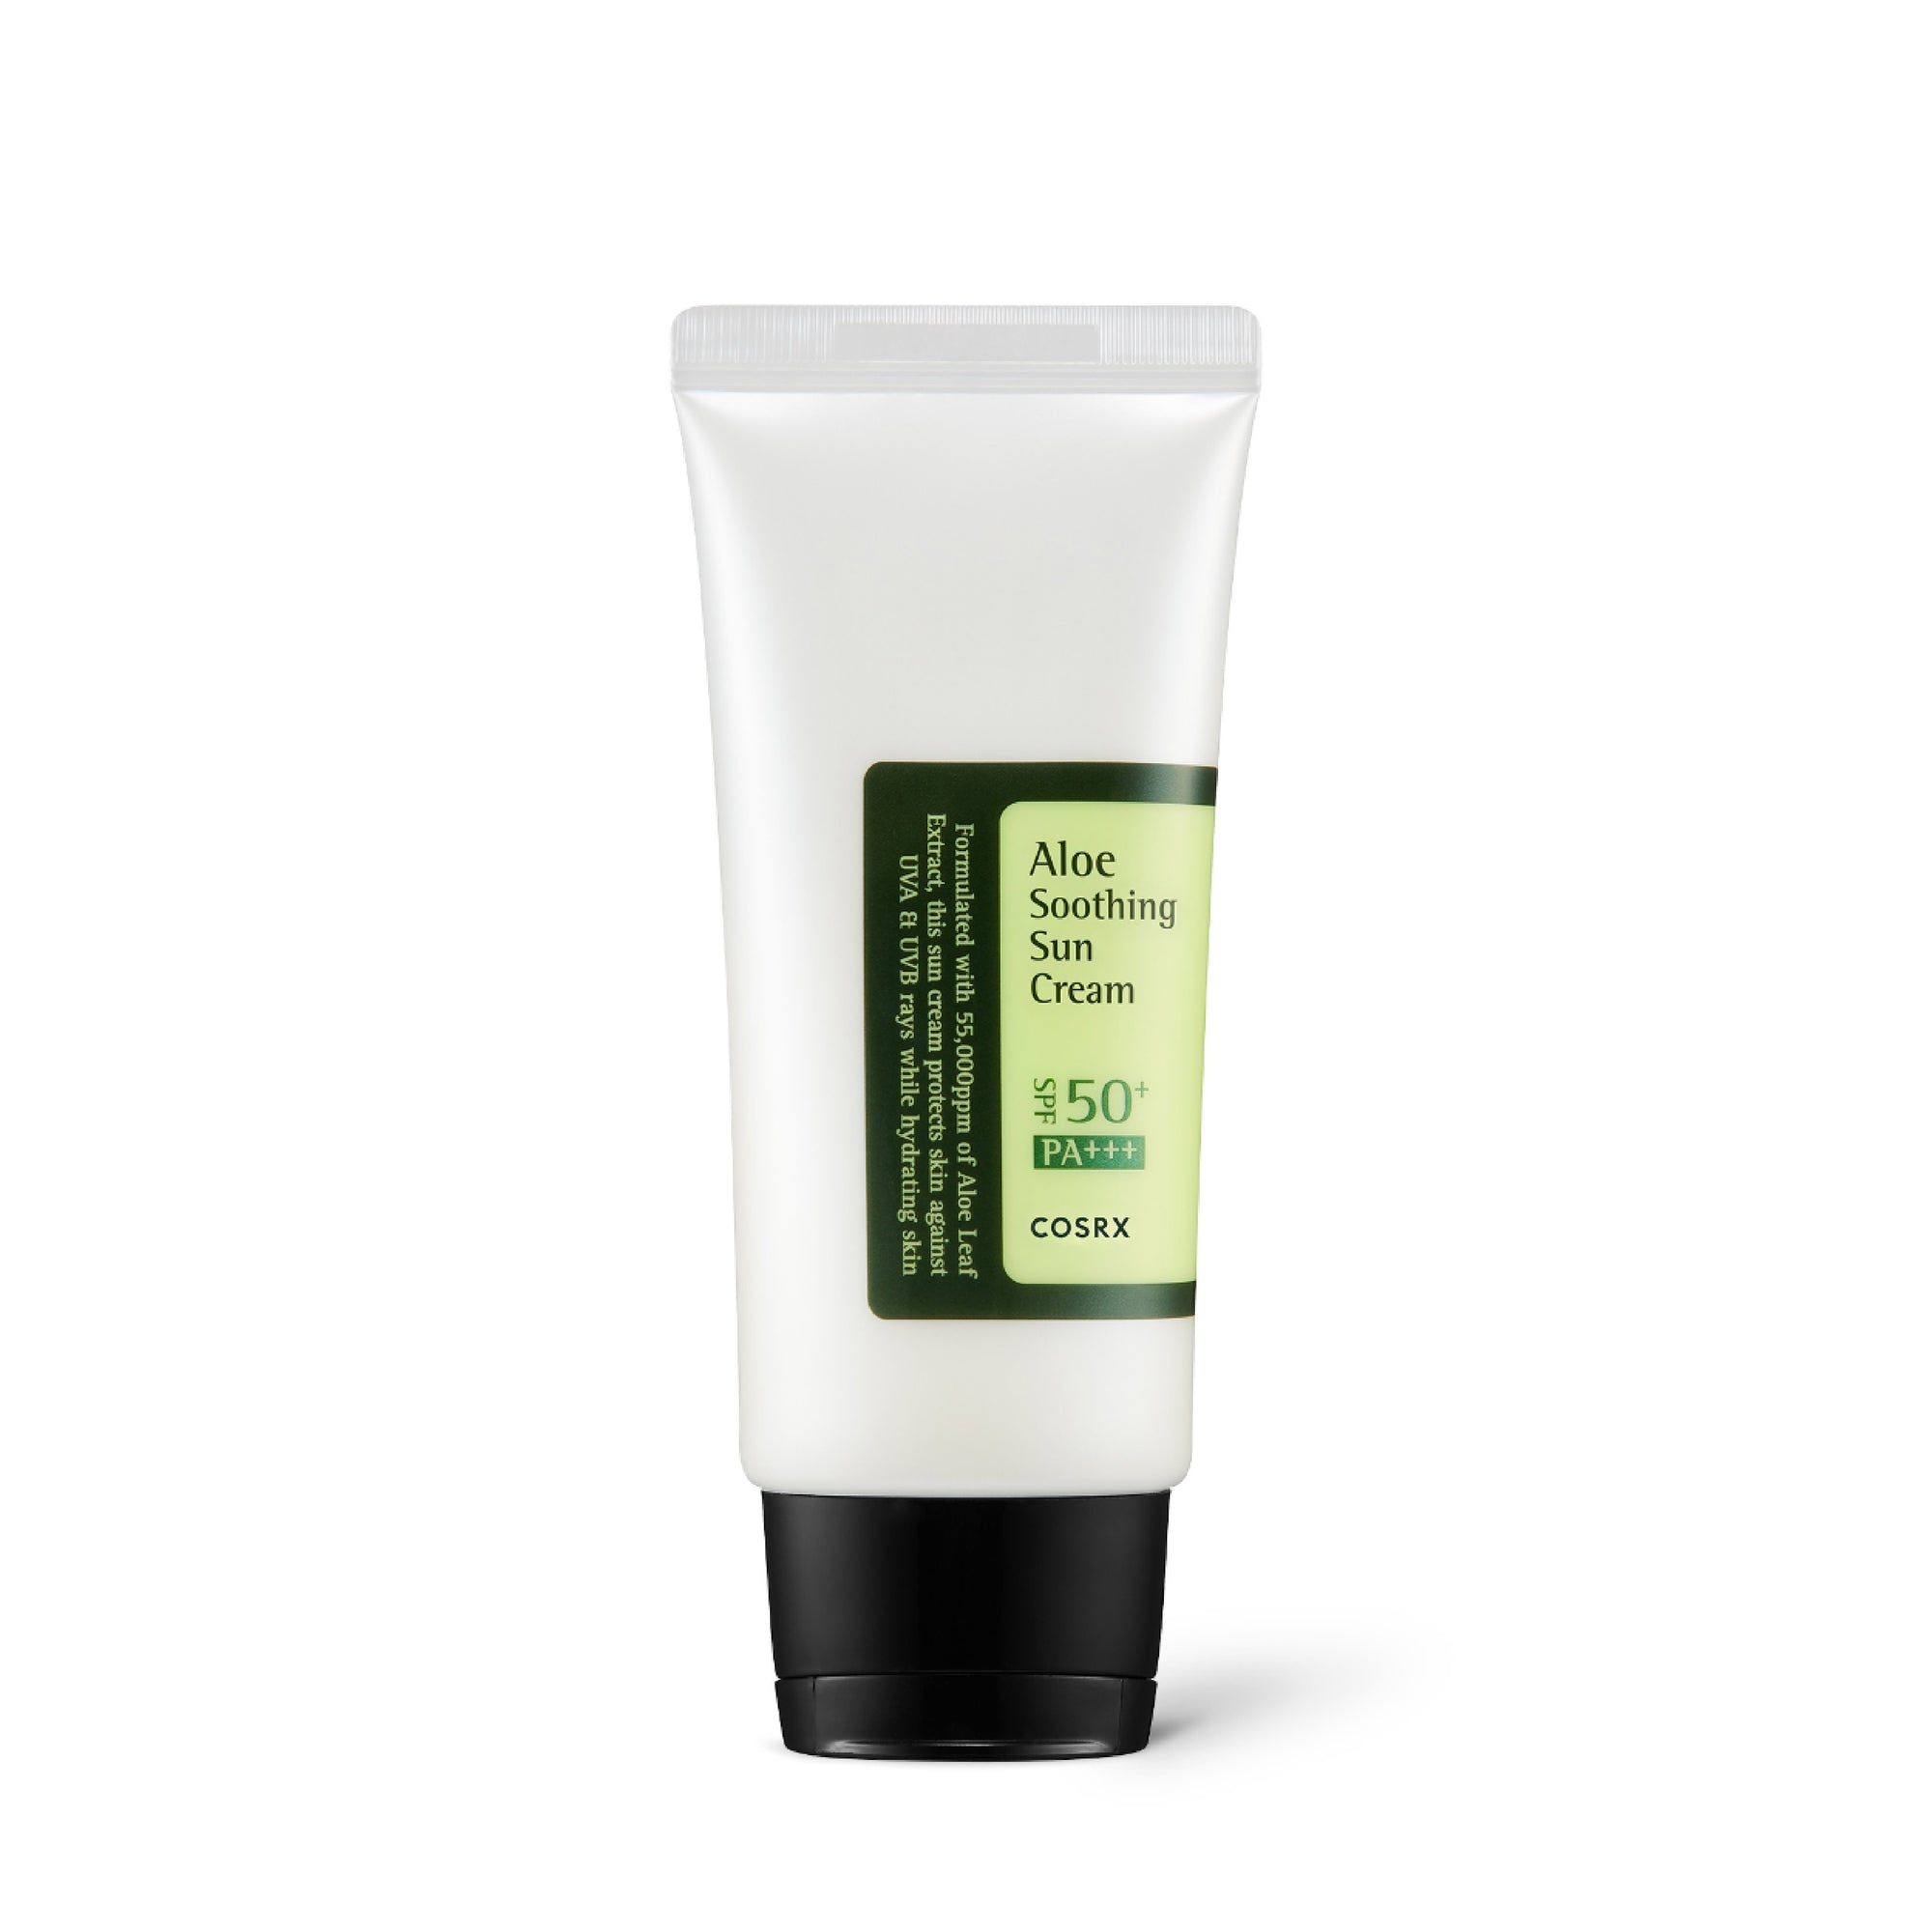 Aloe Soothing Sun Cream (50ml) Face SPF COSRX